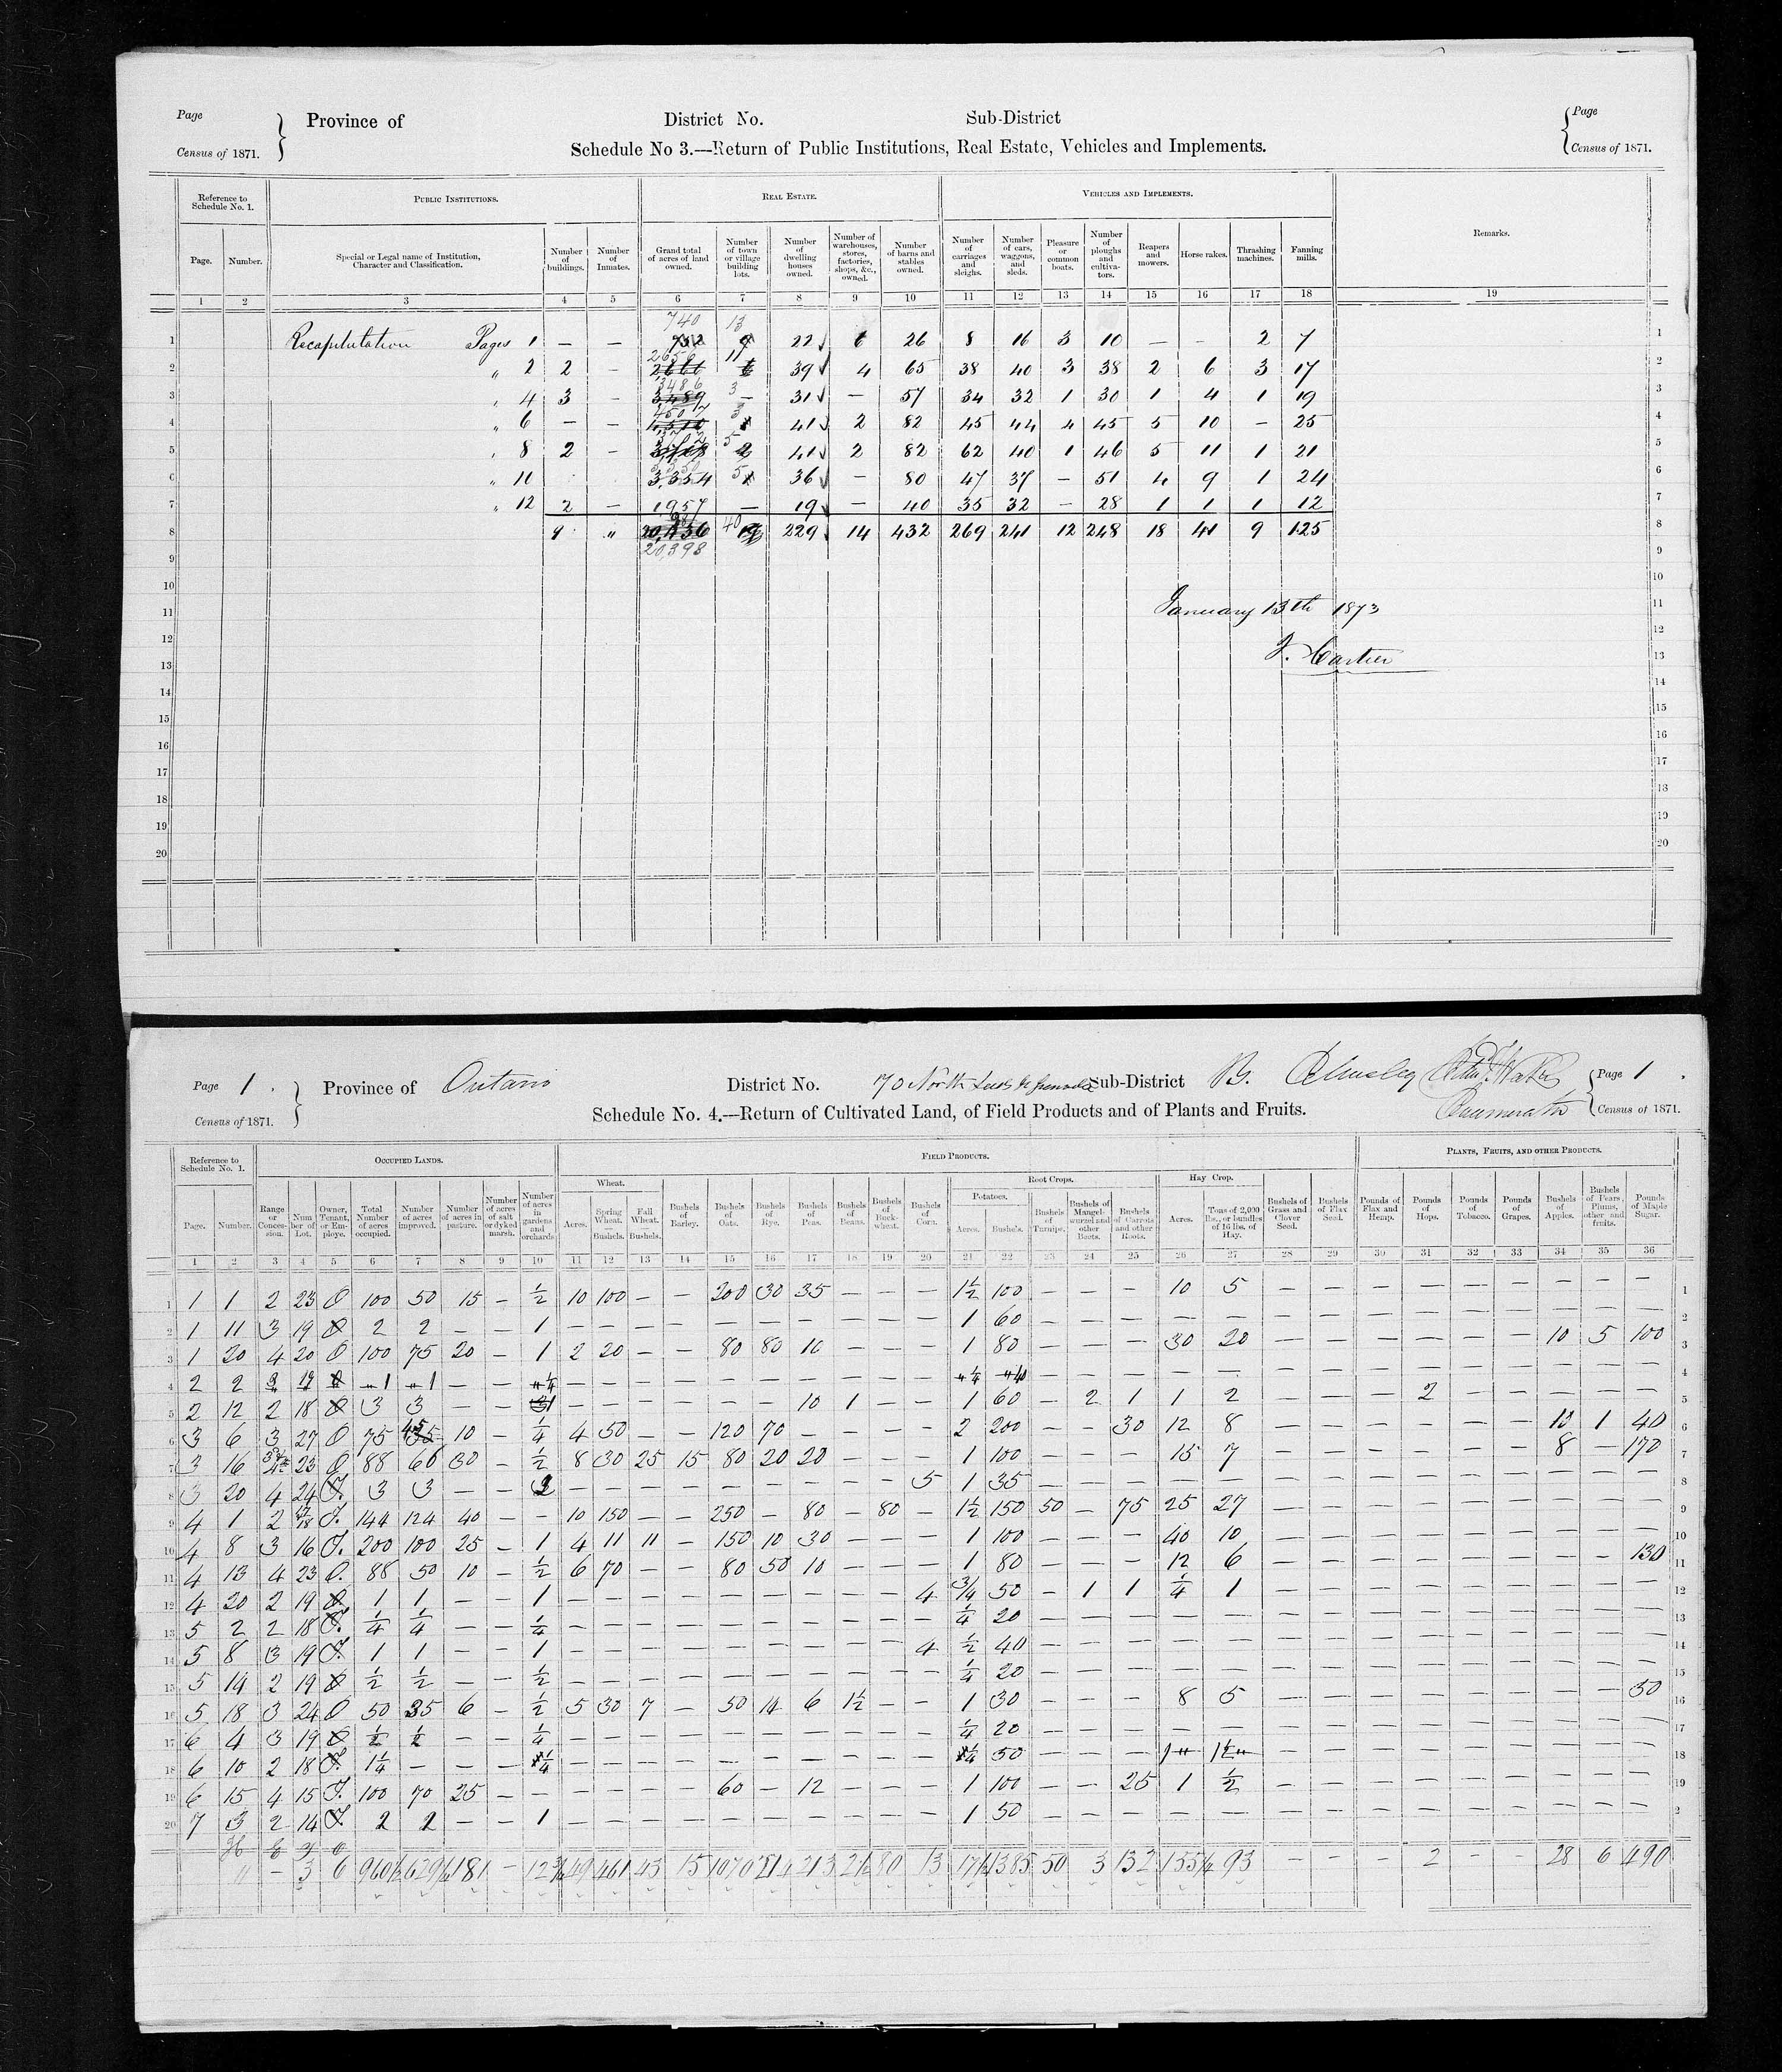 Title: Census of Canada, 1871 - Mikan Number: 142105 - Microform: c-10004